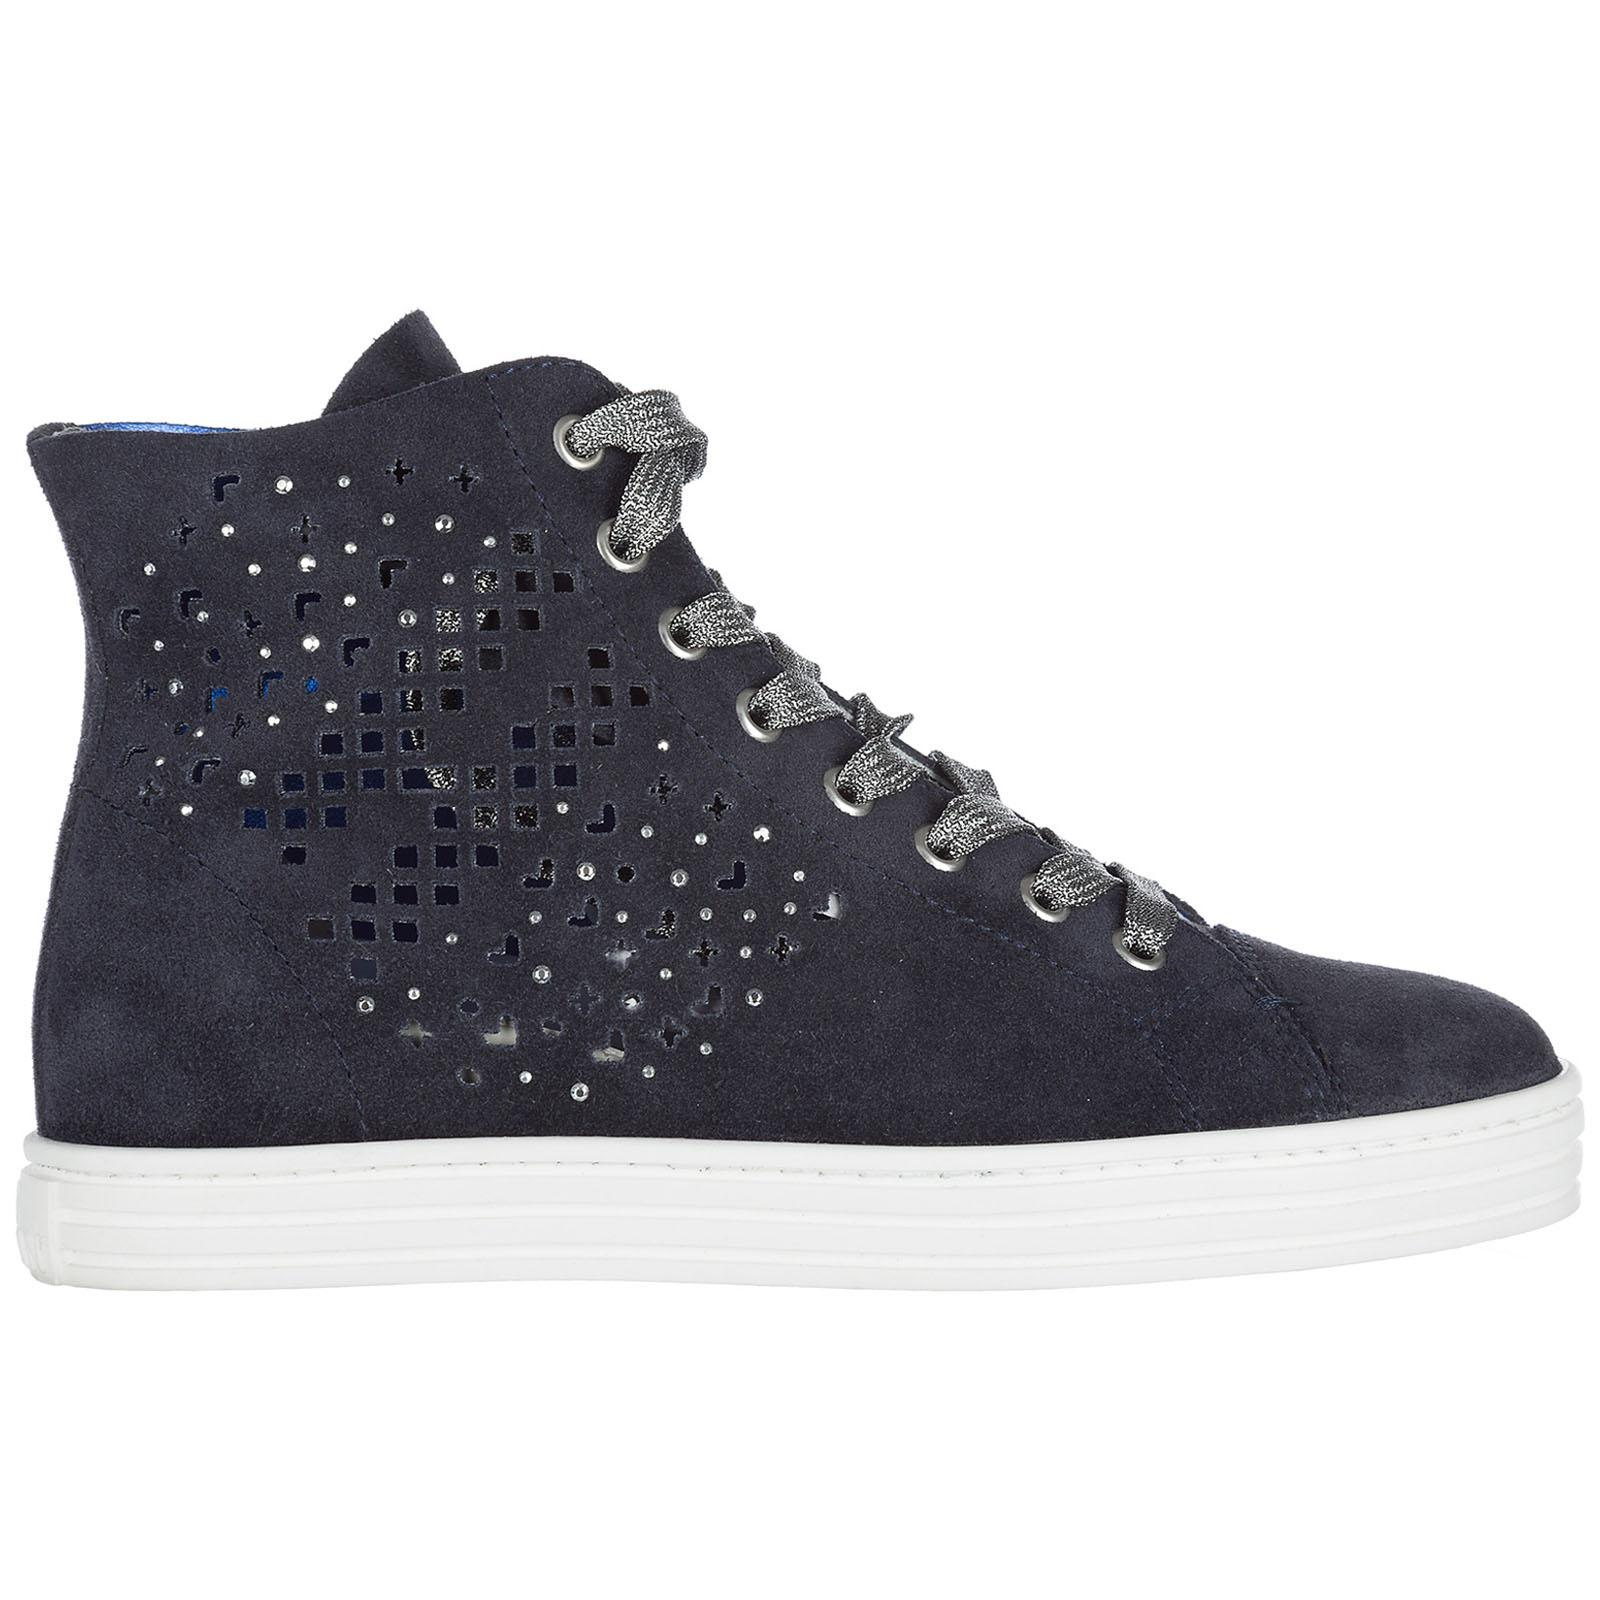 f2f2bb045e8 Lyst - Hogan Rebel Shoes High Top Suede Trainers Sneakers R182 in ...